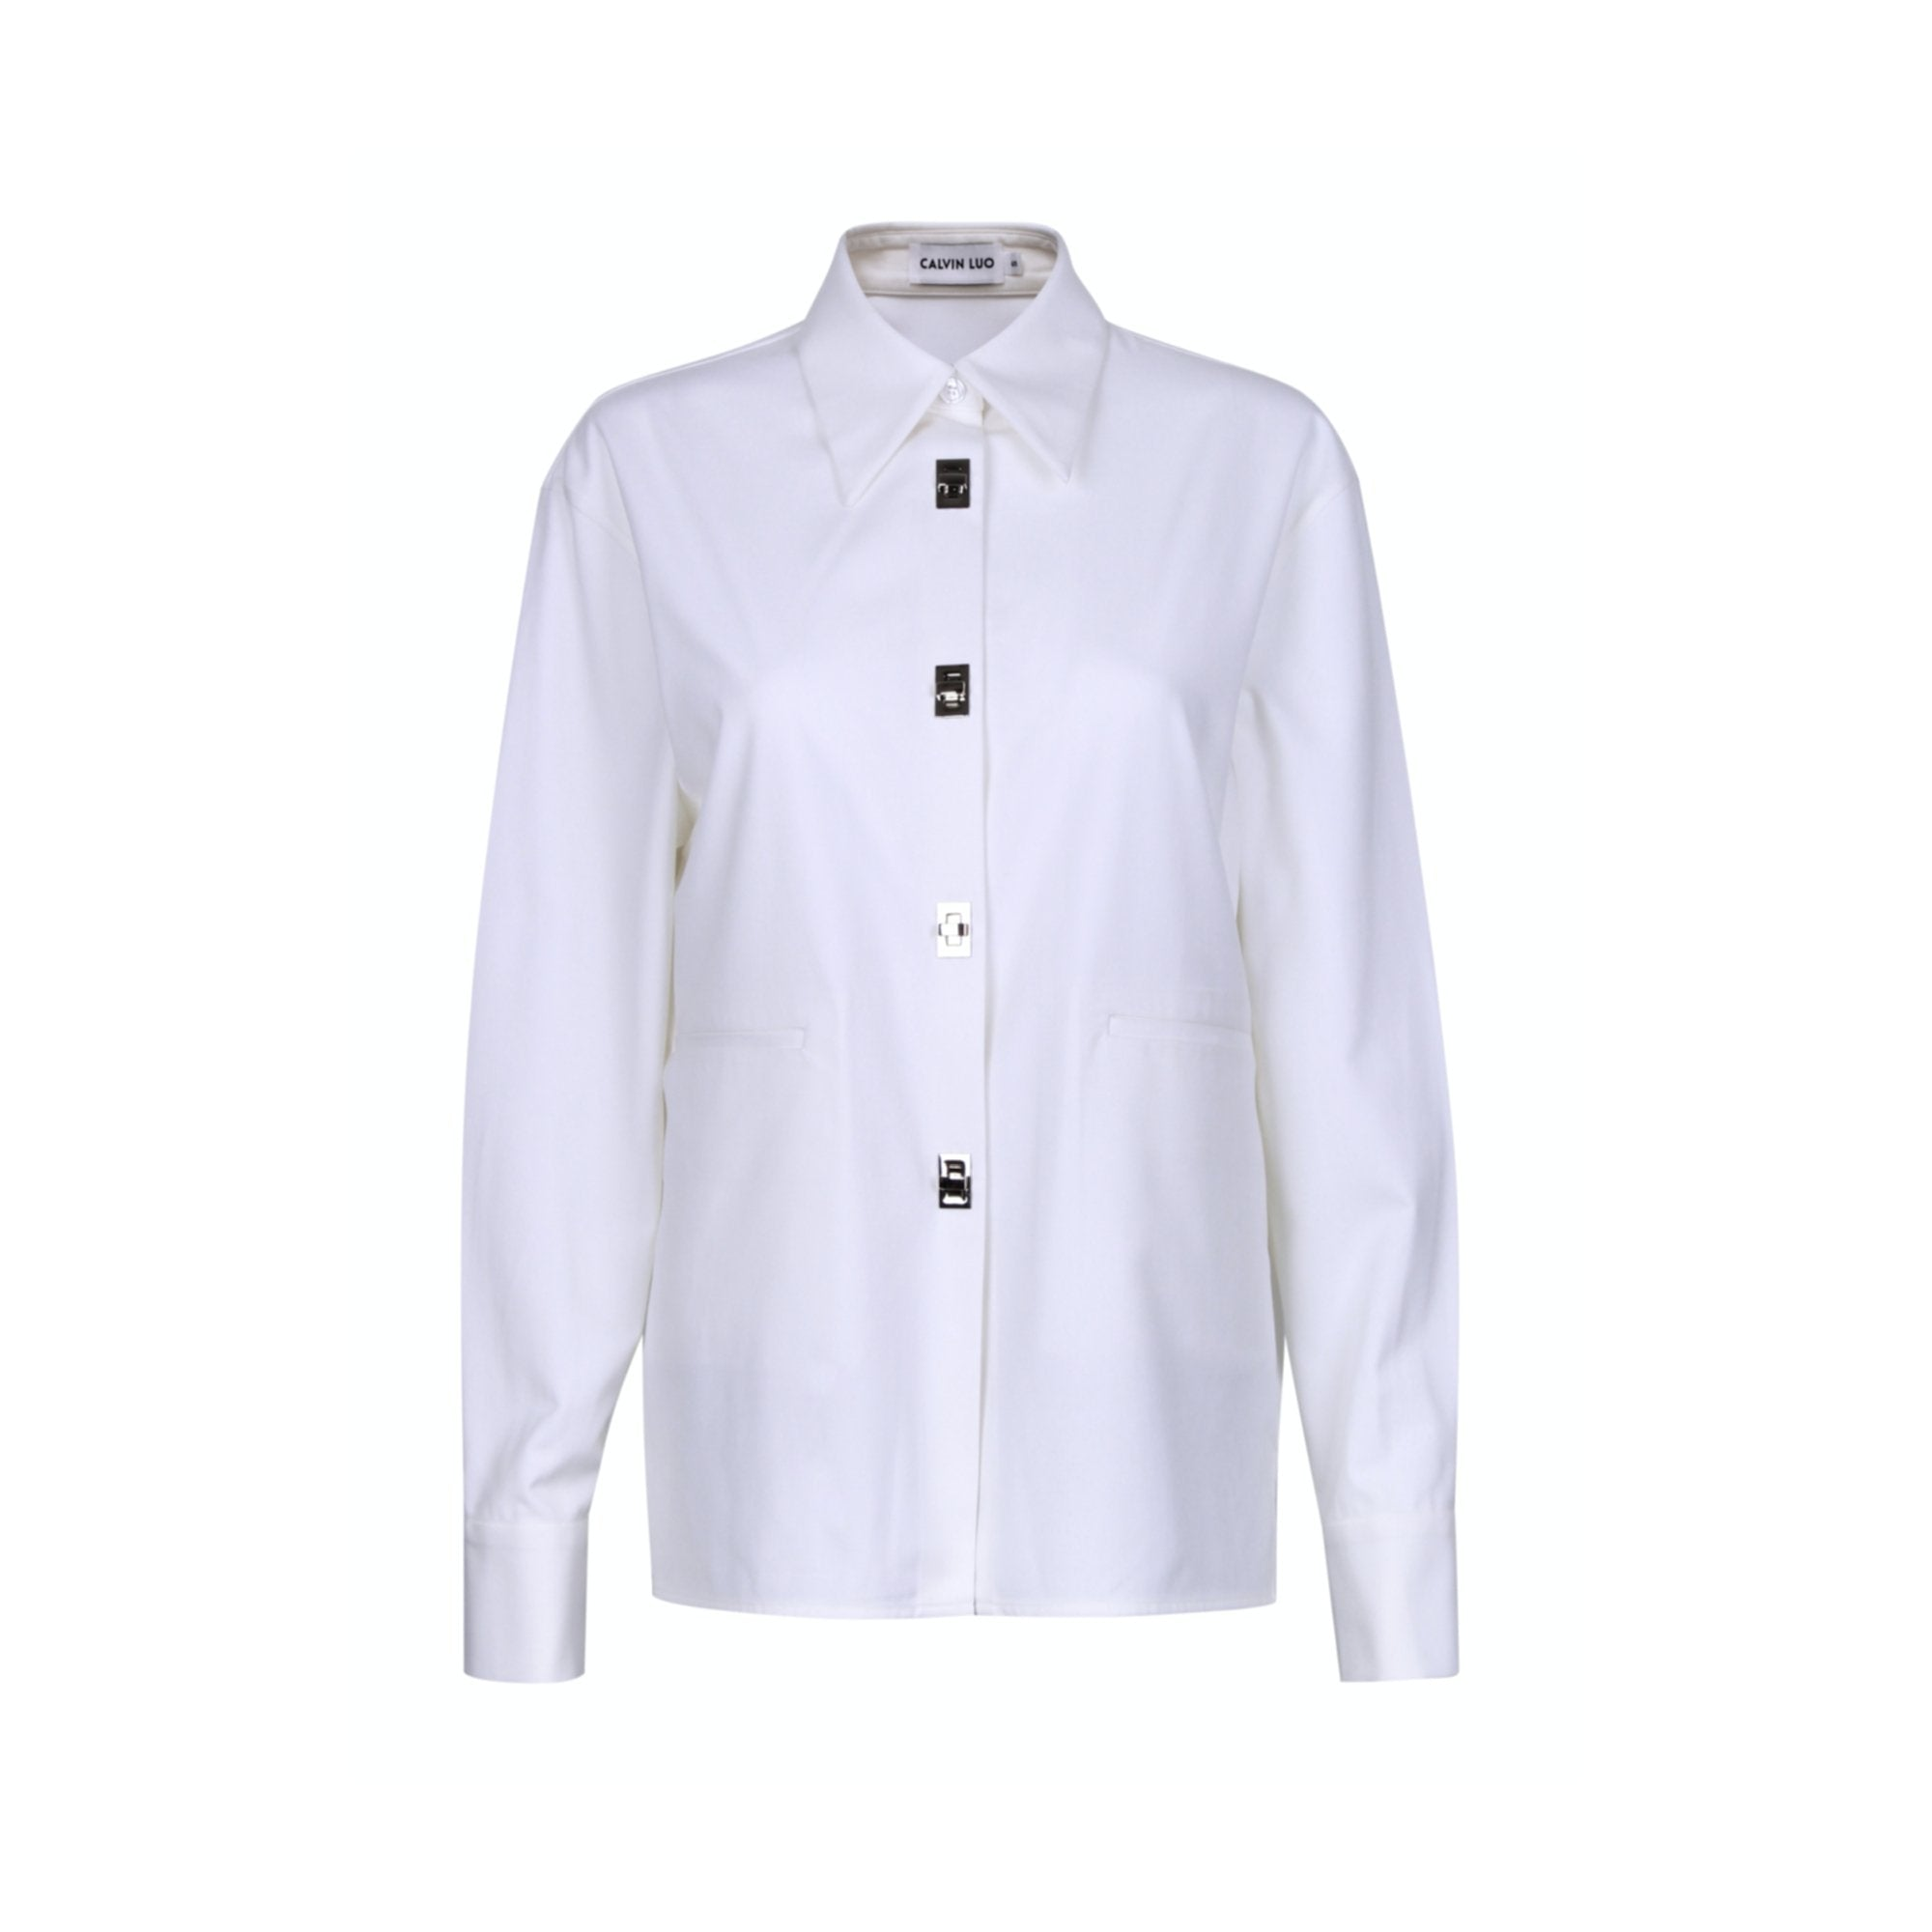 CALVIN LUO White Twist-Lock Shirt | MADA IN CHINA